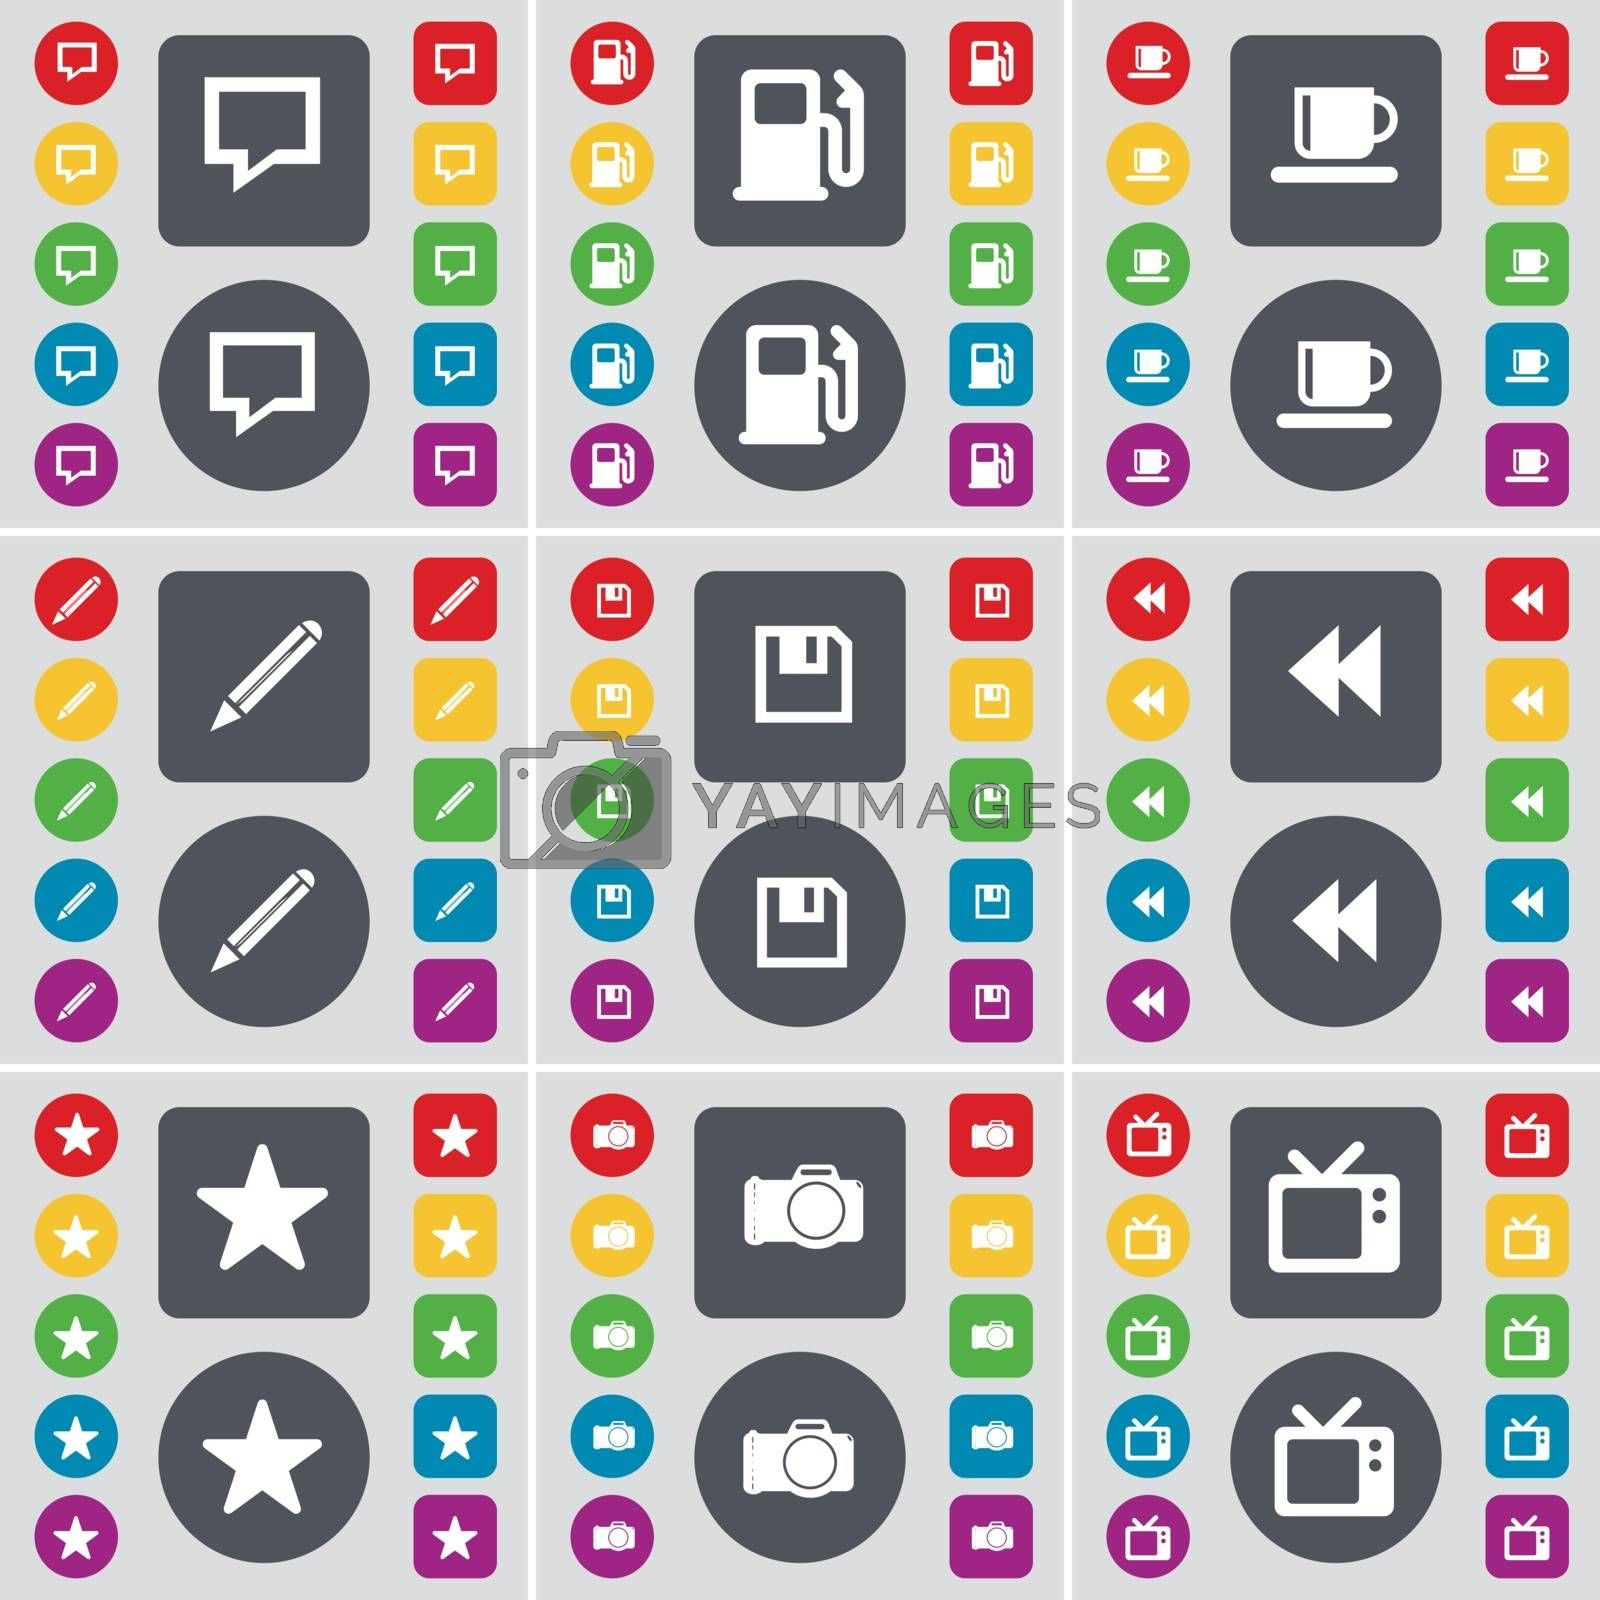 Royalty free image of Chat bubble, Gas station, Cup, Pencil, Floppy, Rewind, Star, Camera, Retro TV icon symbol. A large set of flat, colored buttons for your design. Vector by serhii_lohvyniuk